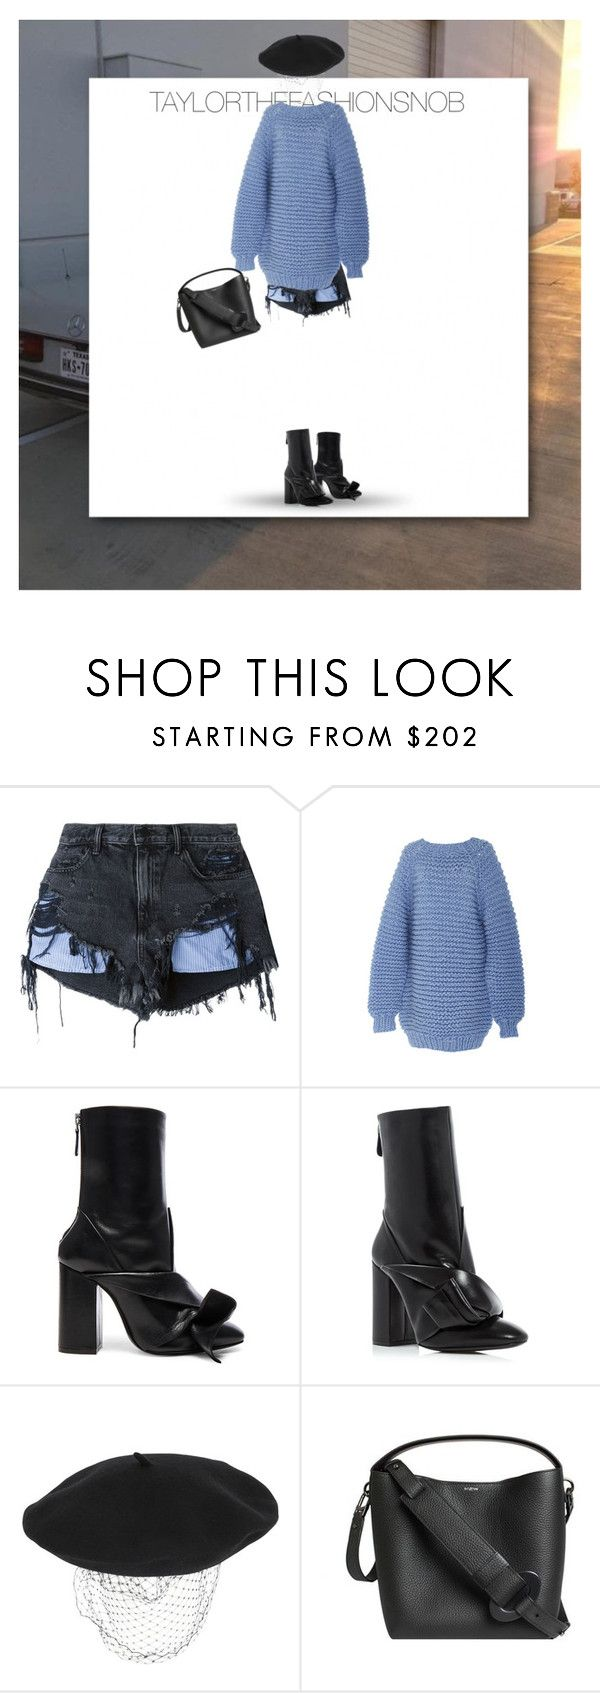 """Untitled #649"" by taylorthefashionsnob ❤ liked on Polyvore featuring Alexander Wang, I Love Mr. Mittens, N°21, Silver Spoon Attire and Perrin"